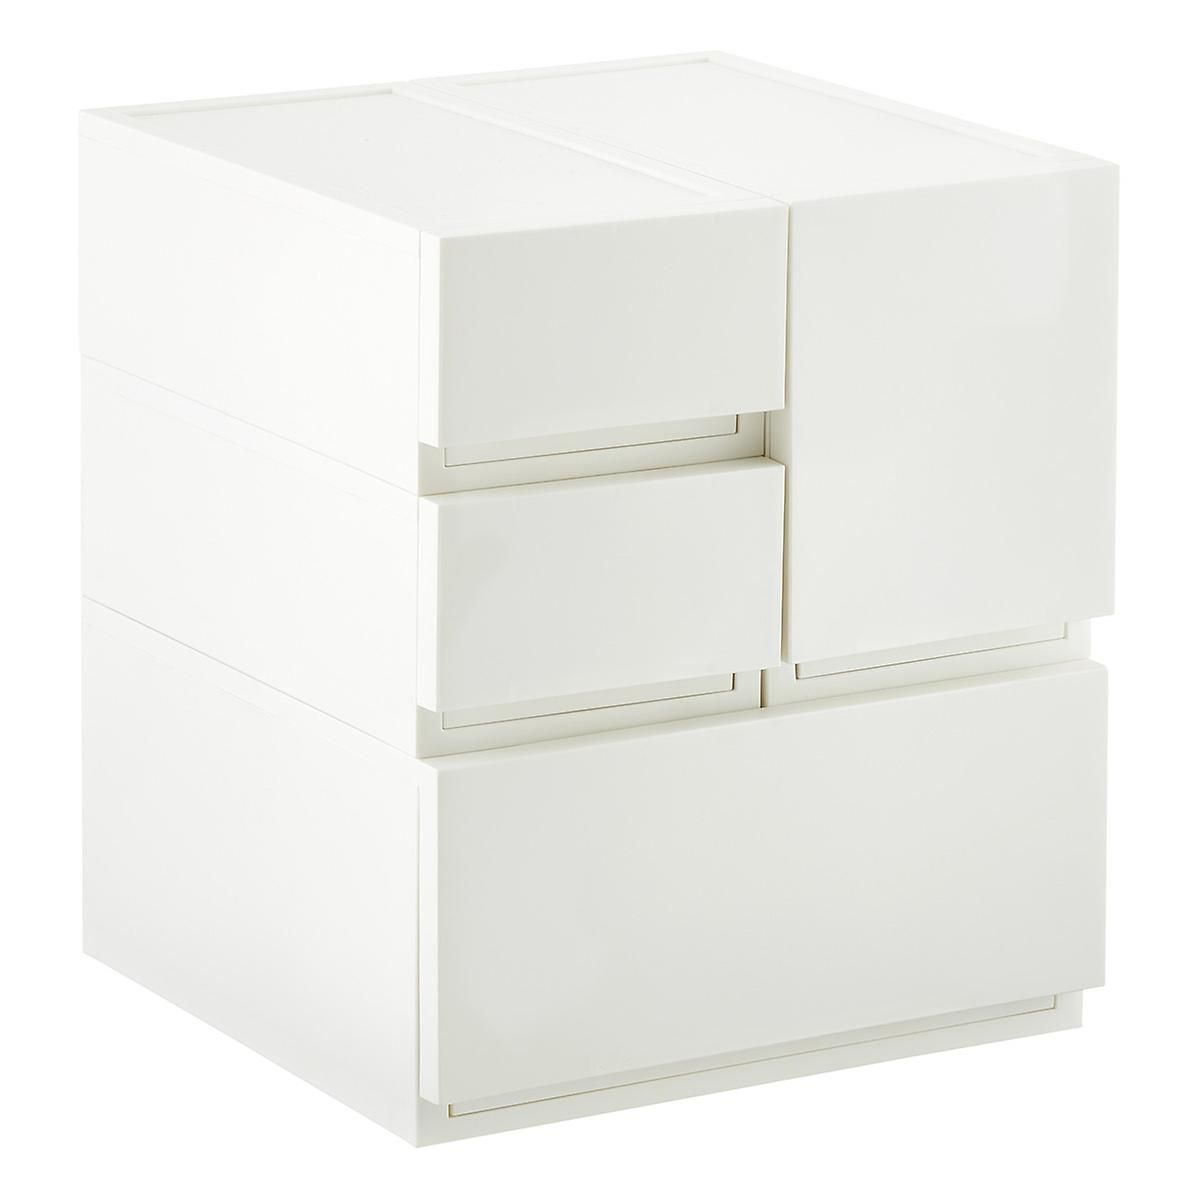 White Opaque Modular Stackable Drawers Drawers Modular Bathrooms Plastic Drawers